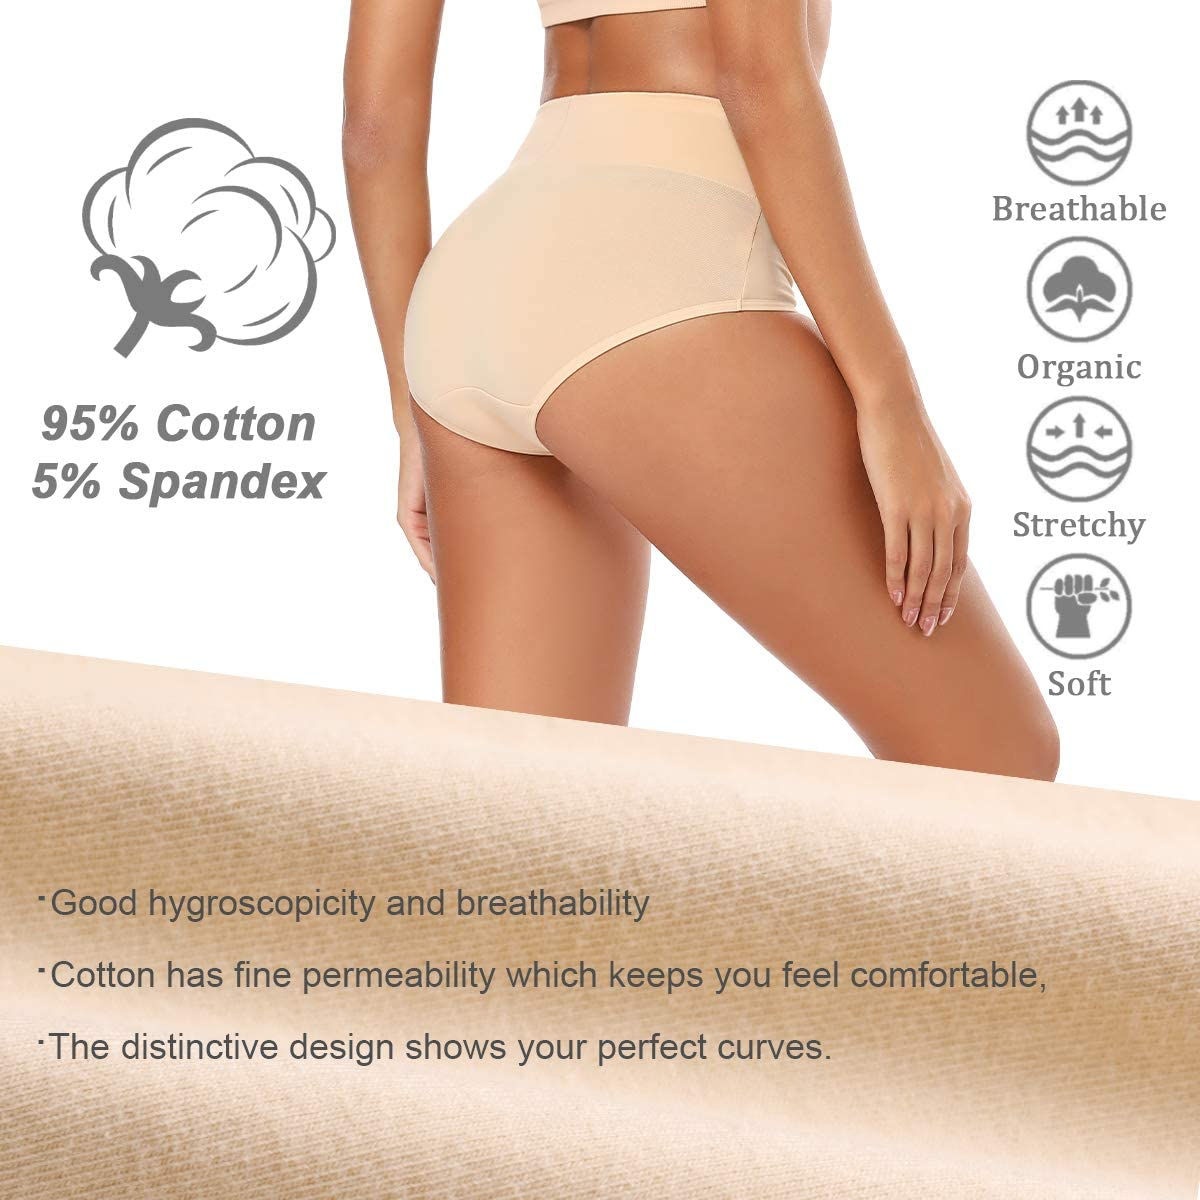 S-5XL Molasus Womens Cotton Underwear High Waisted Full Coverage Ladies Panties